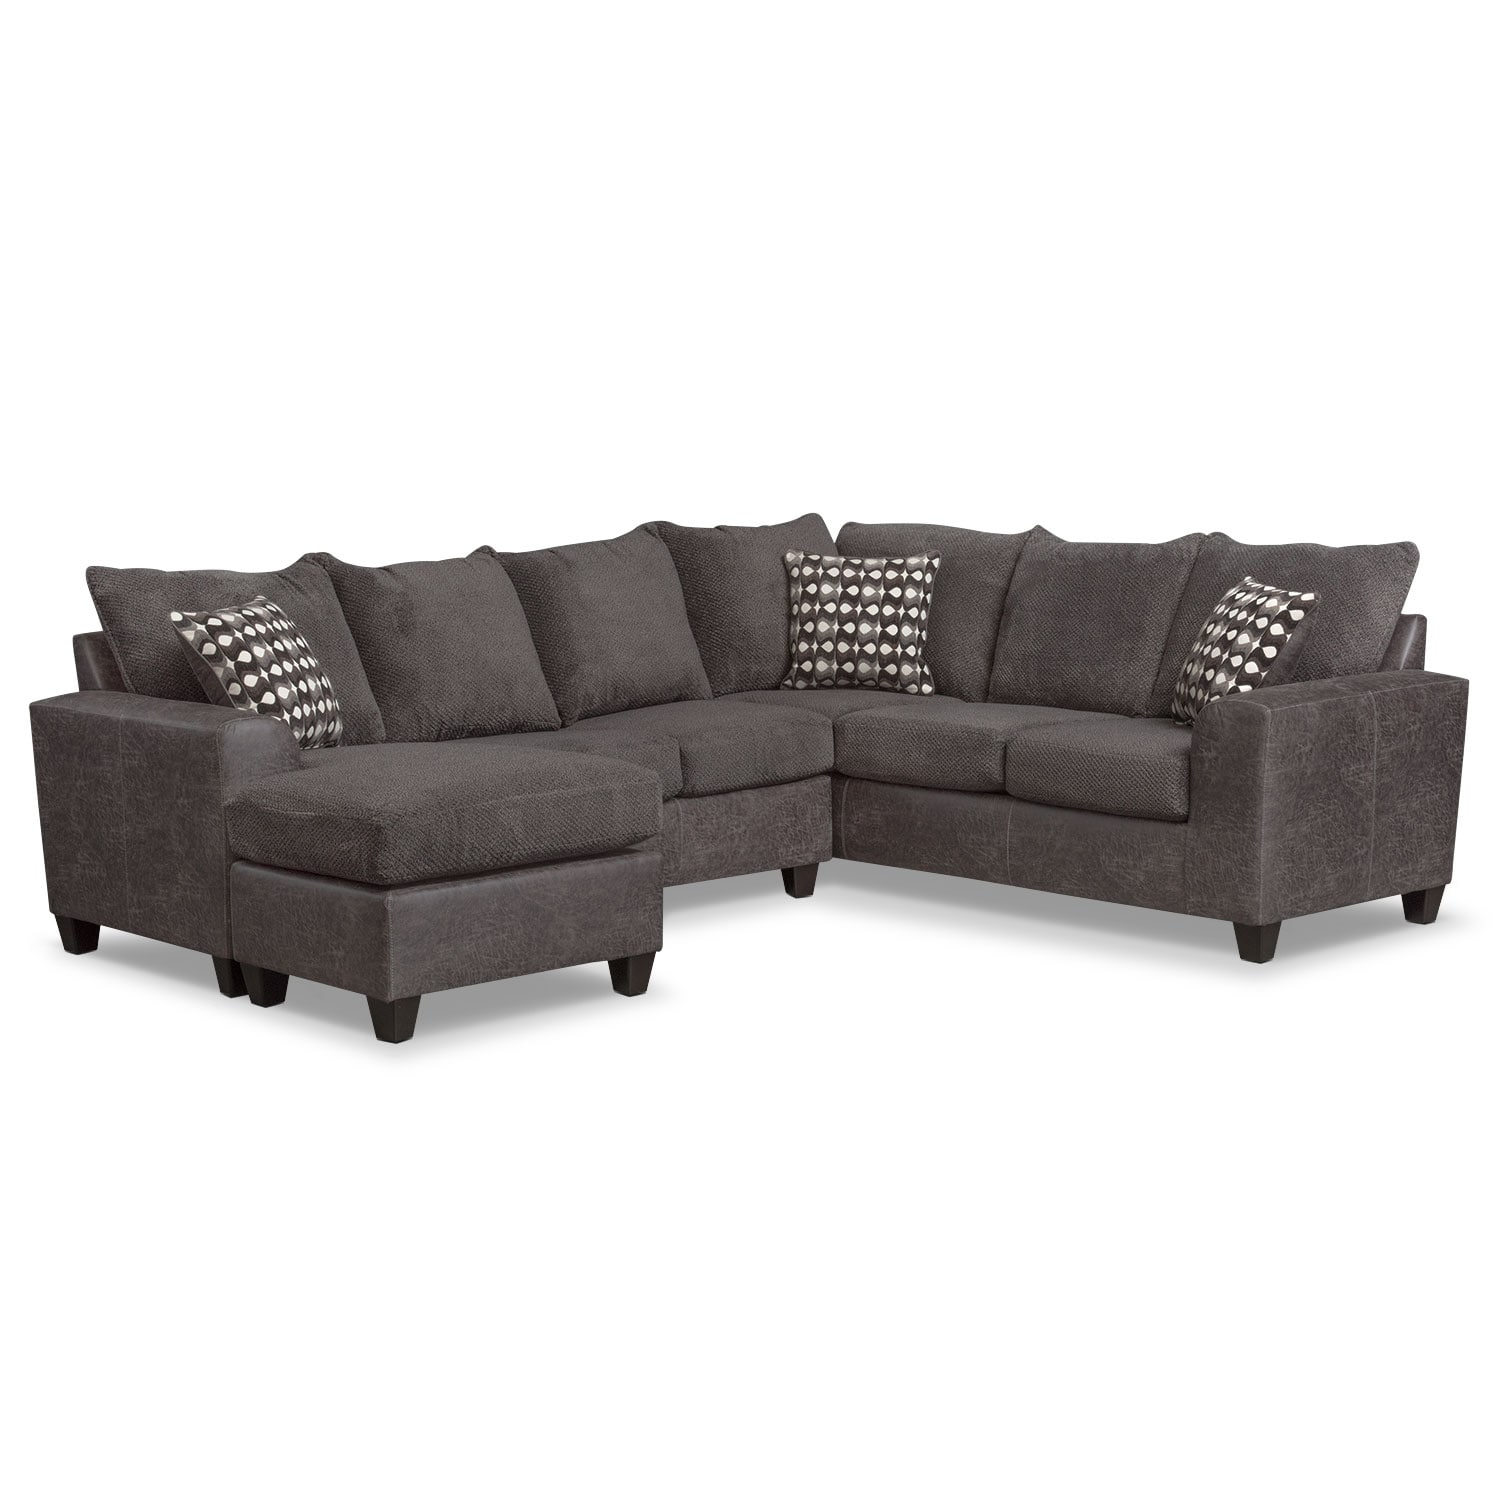 $1,299.98 Brando 3 Piece Sectional With Modular Chaise   Smoke